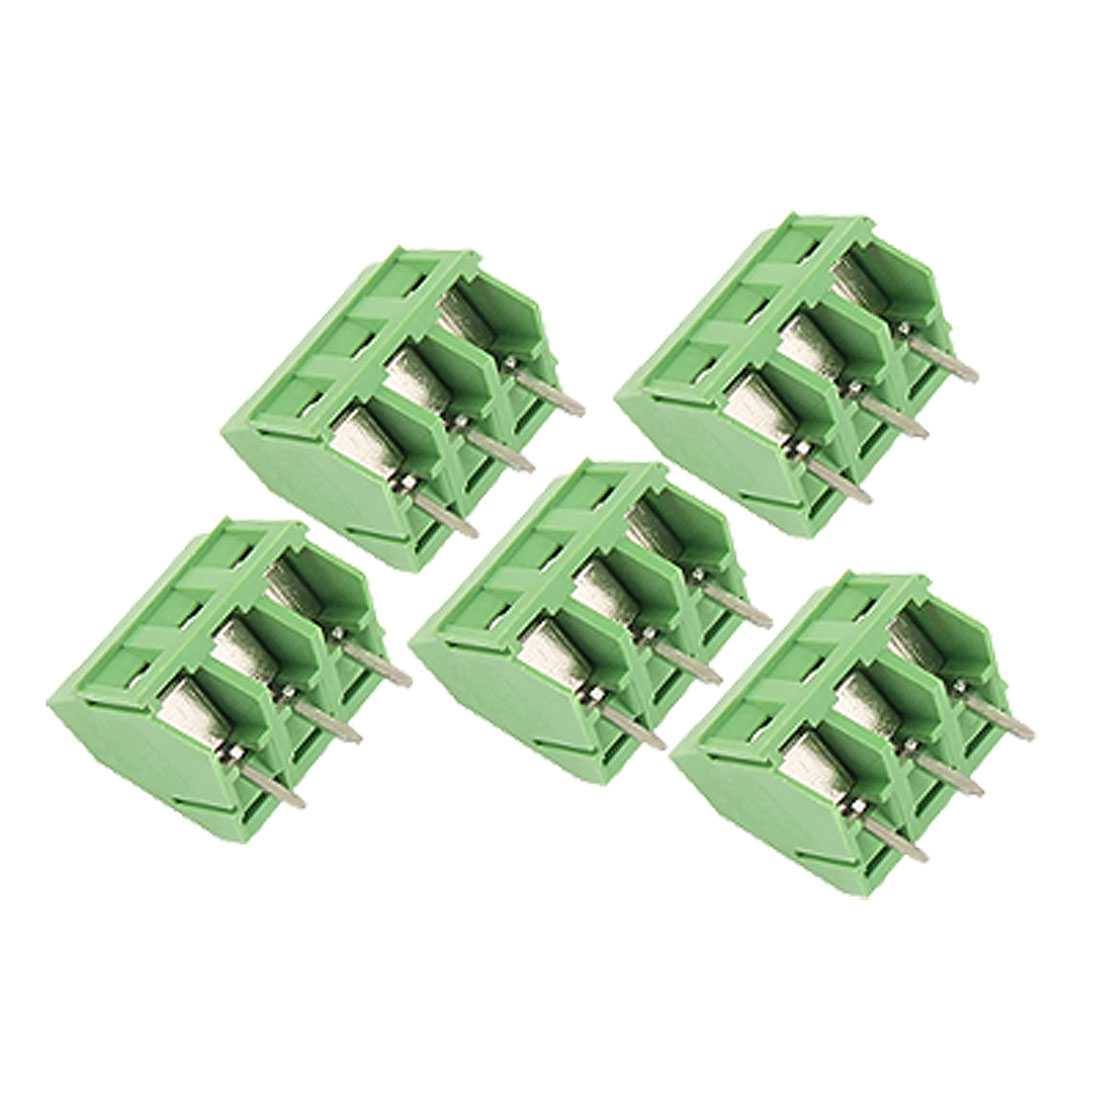 UXCELL 5 Pcs 3P 5.08Mm Pitch Pcb Screw Terminal Block Connector 30A